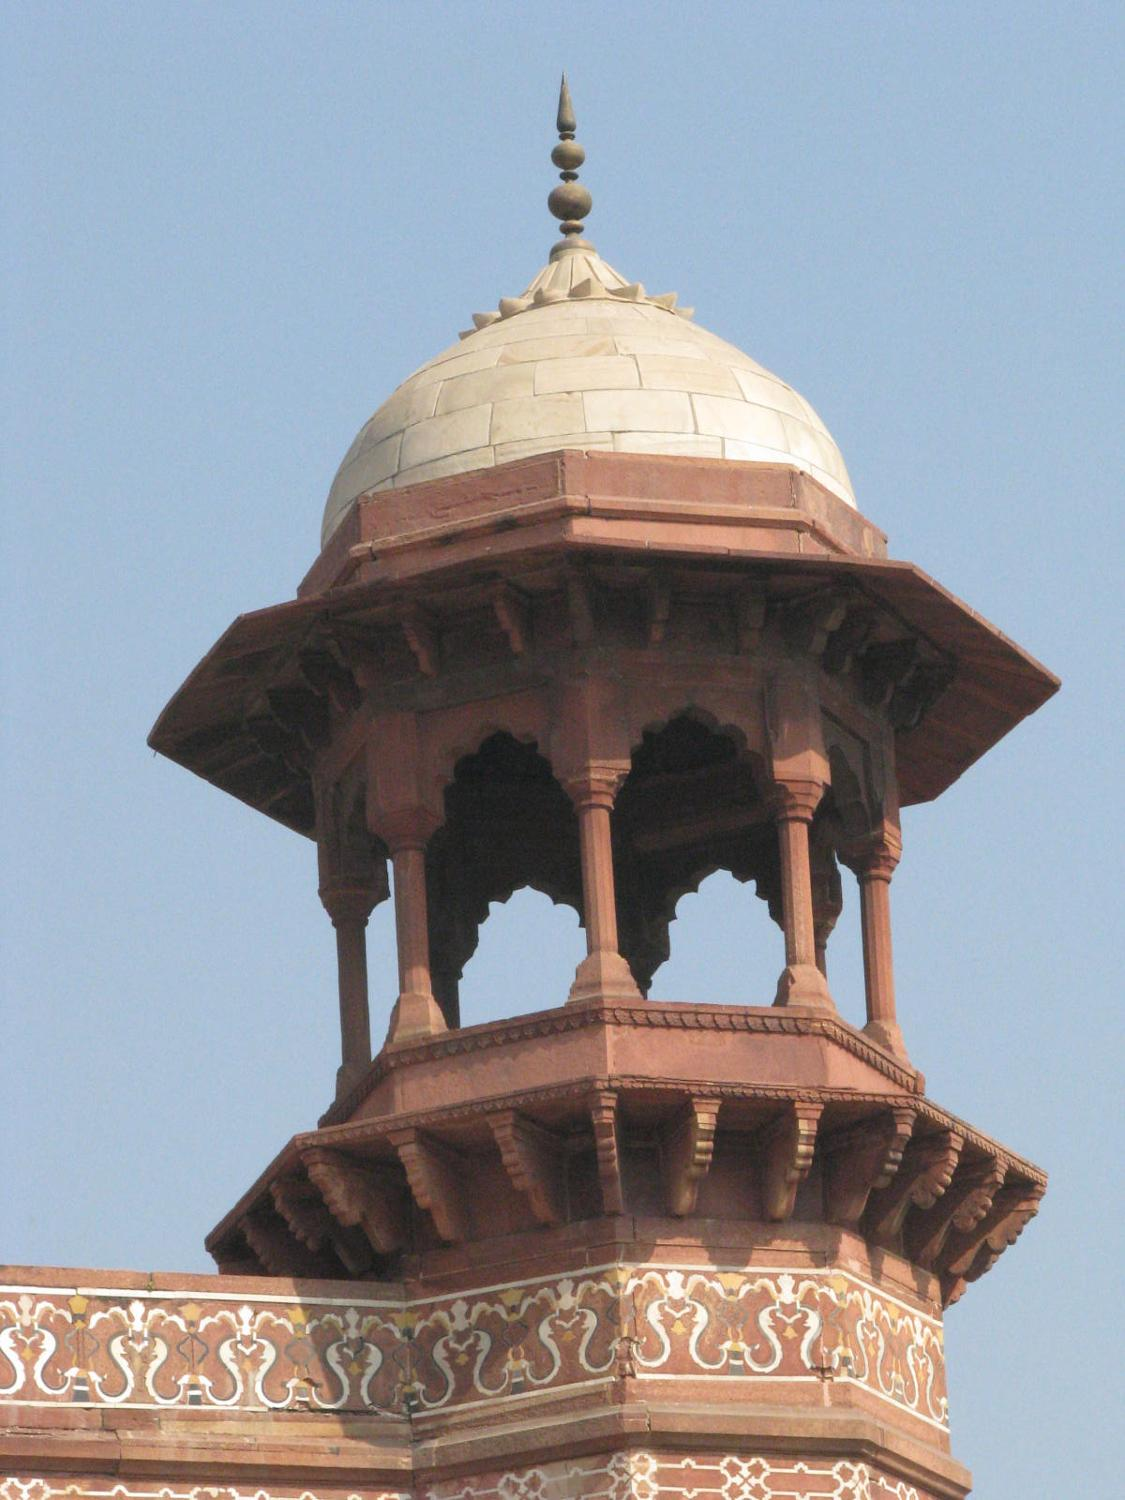 Minaret at the mosque of the Taj Mahal in Agra, India.